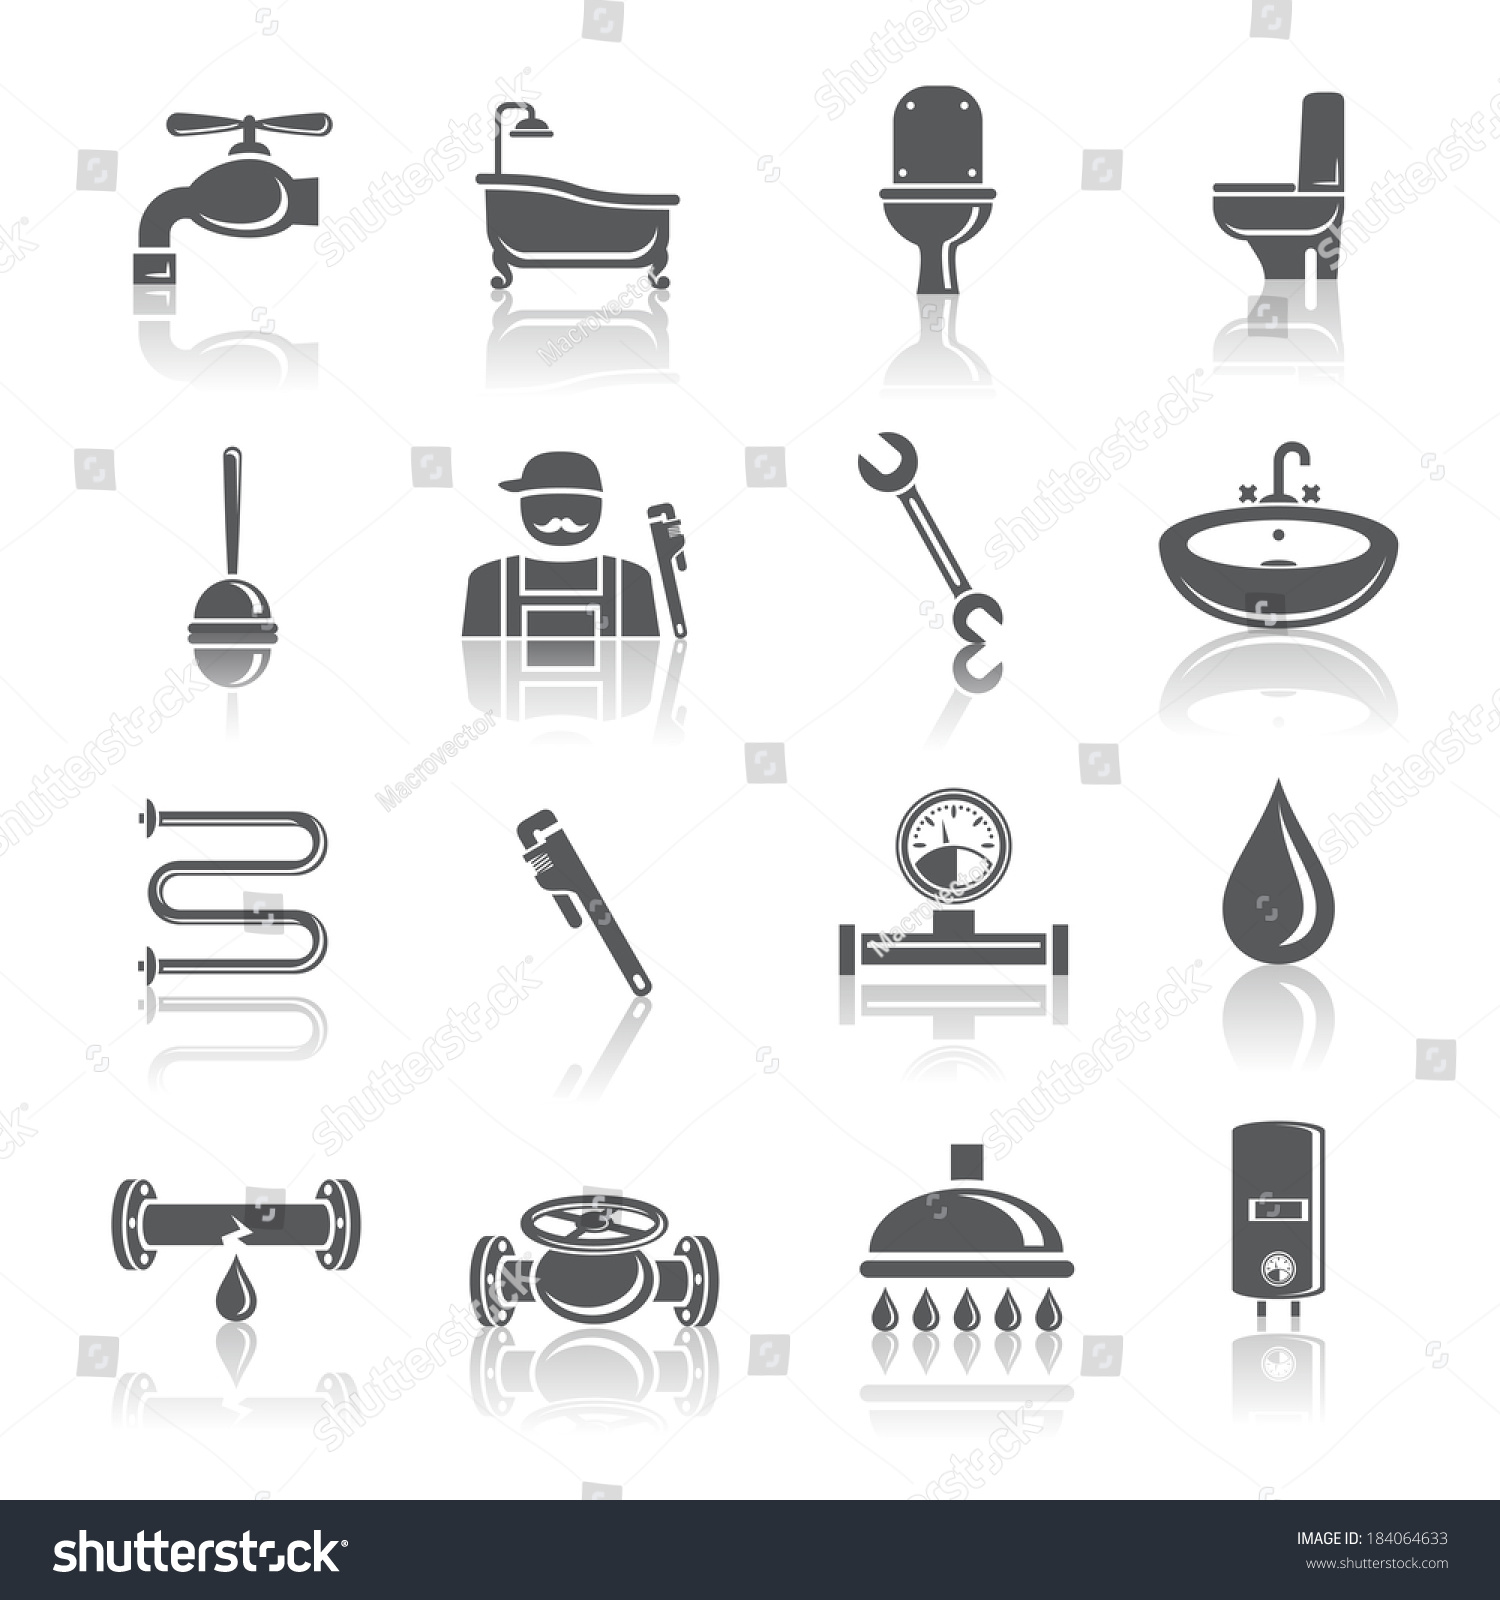 Plumbing Tools Pictograms Set Shower Bathroom Stock Vector